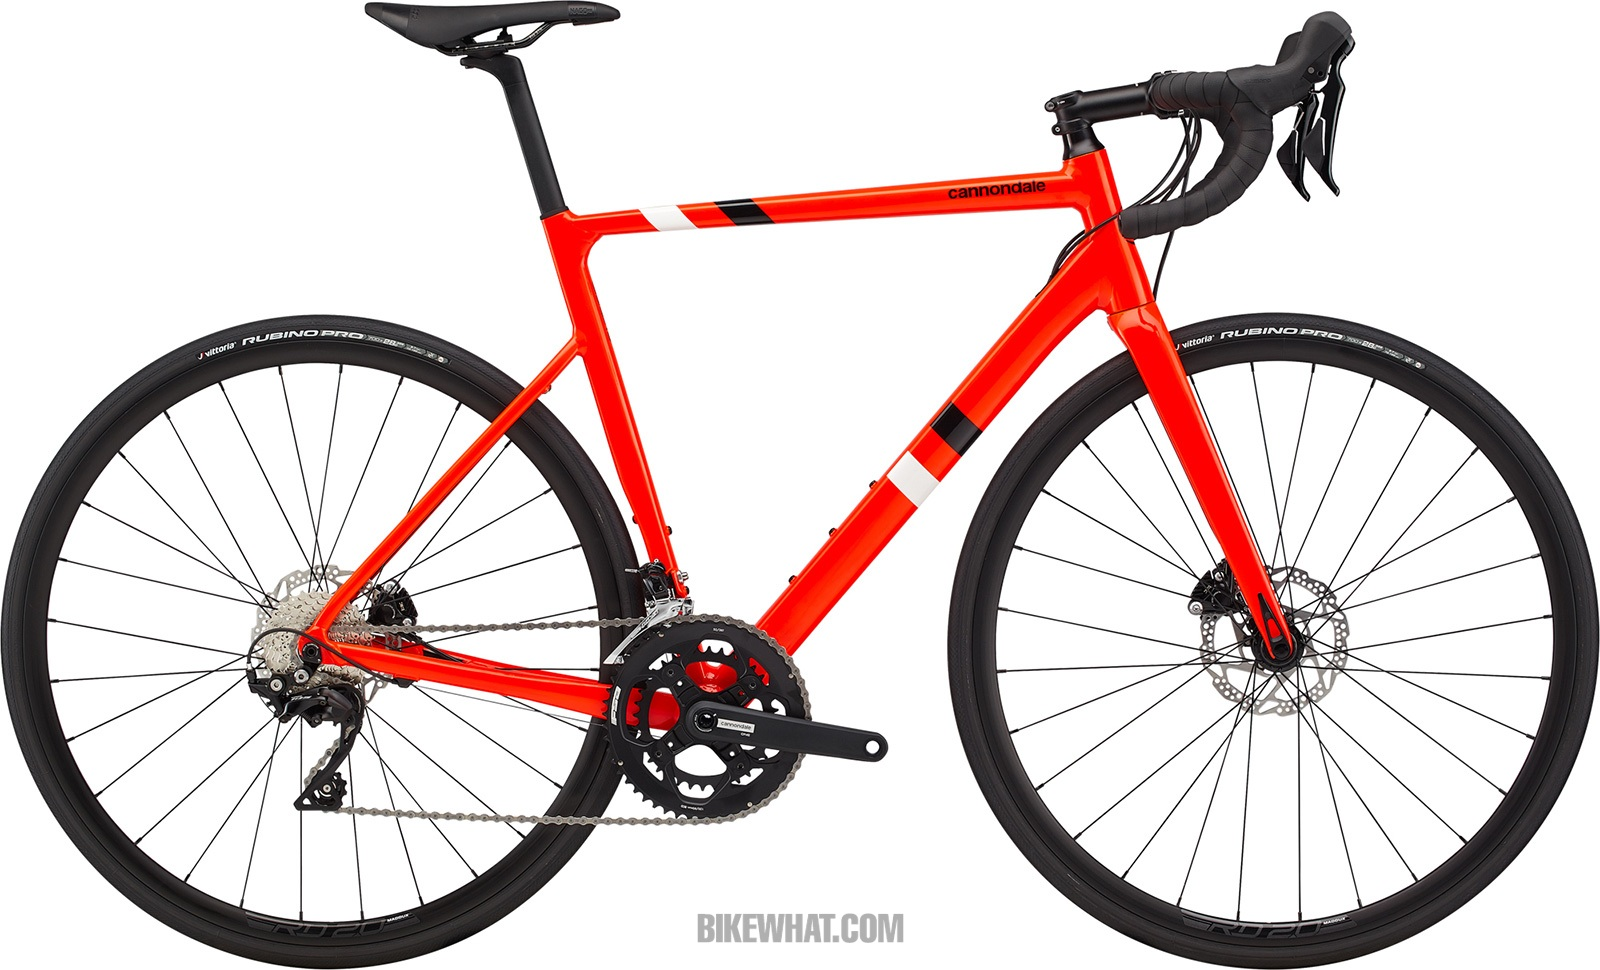 Gear_Cannondale_CAAD13_Disc_105.jpg